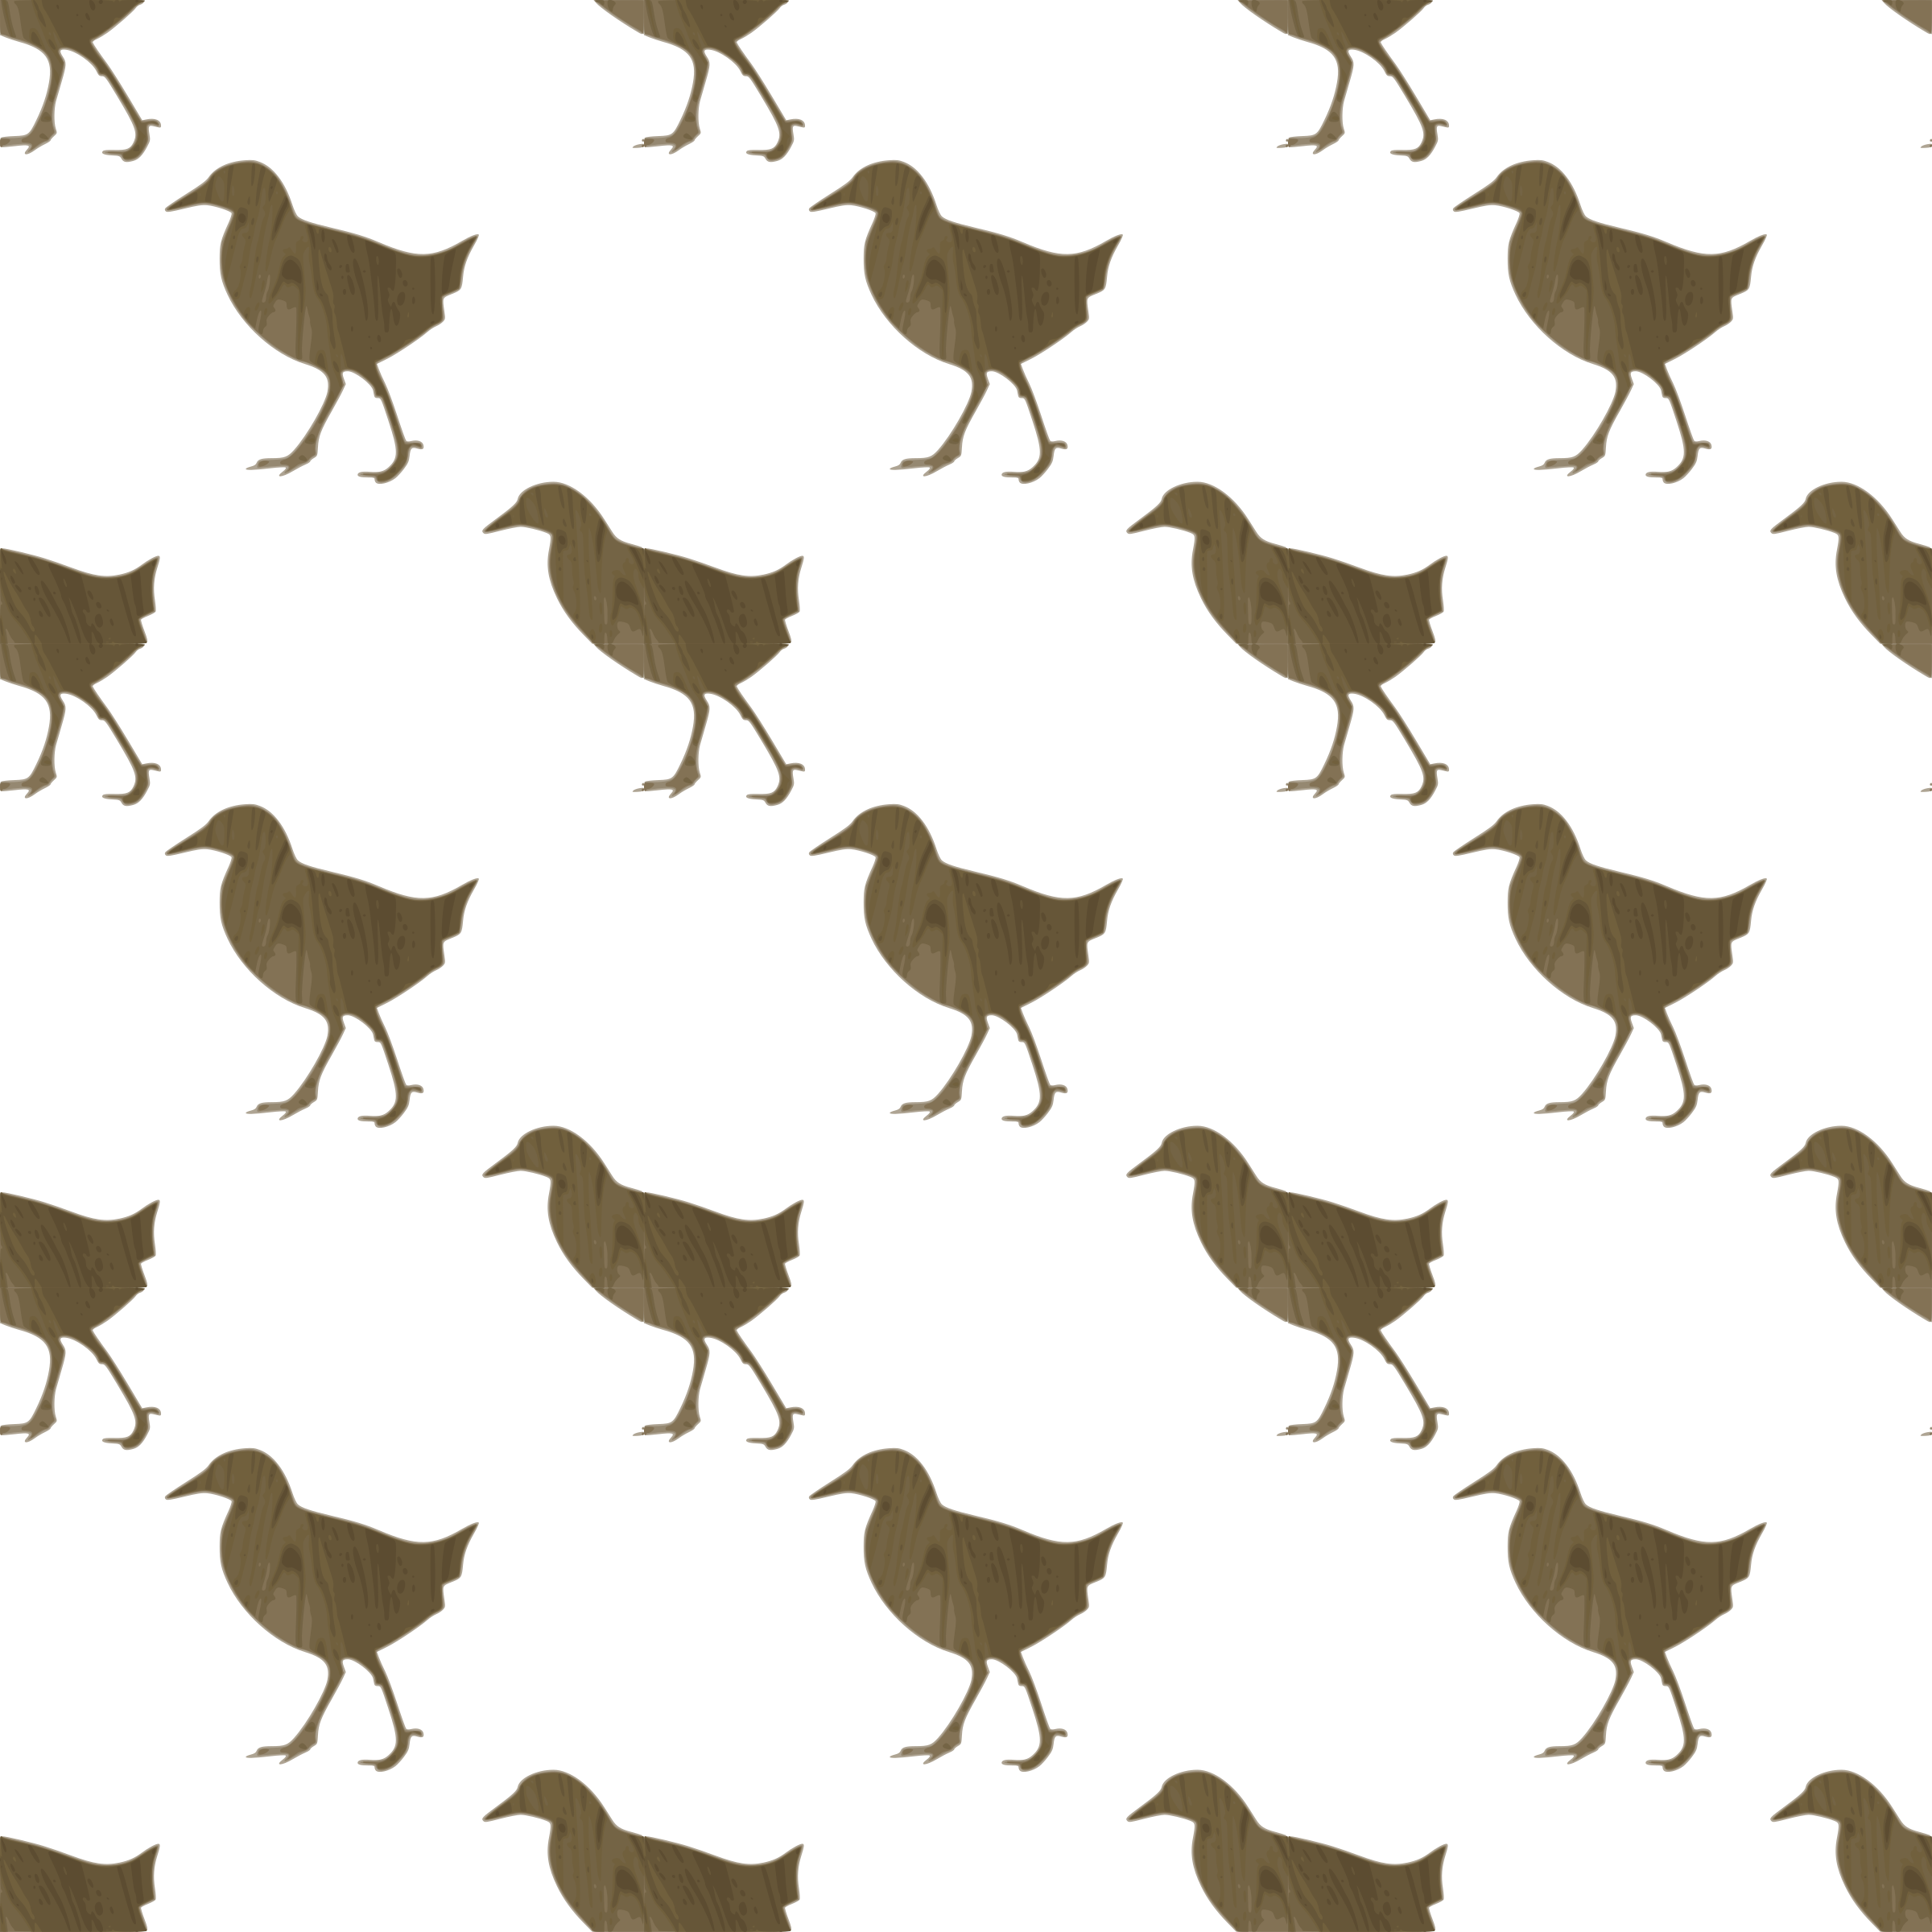 Okinawa rail-seamless pattern by yamachem